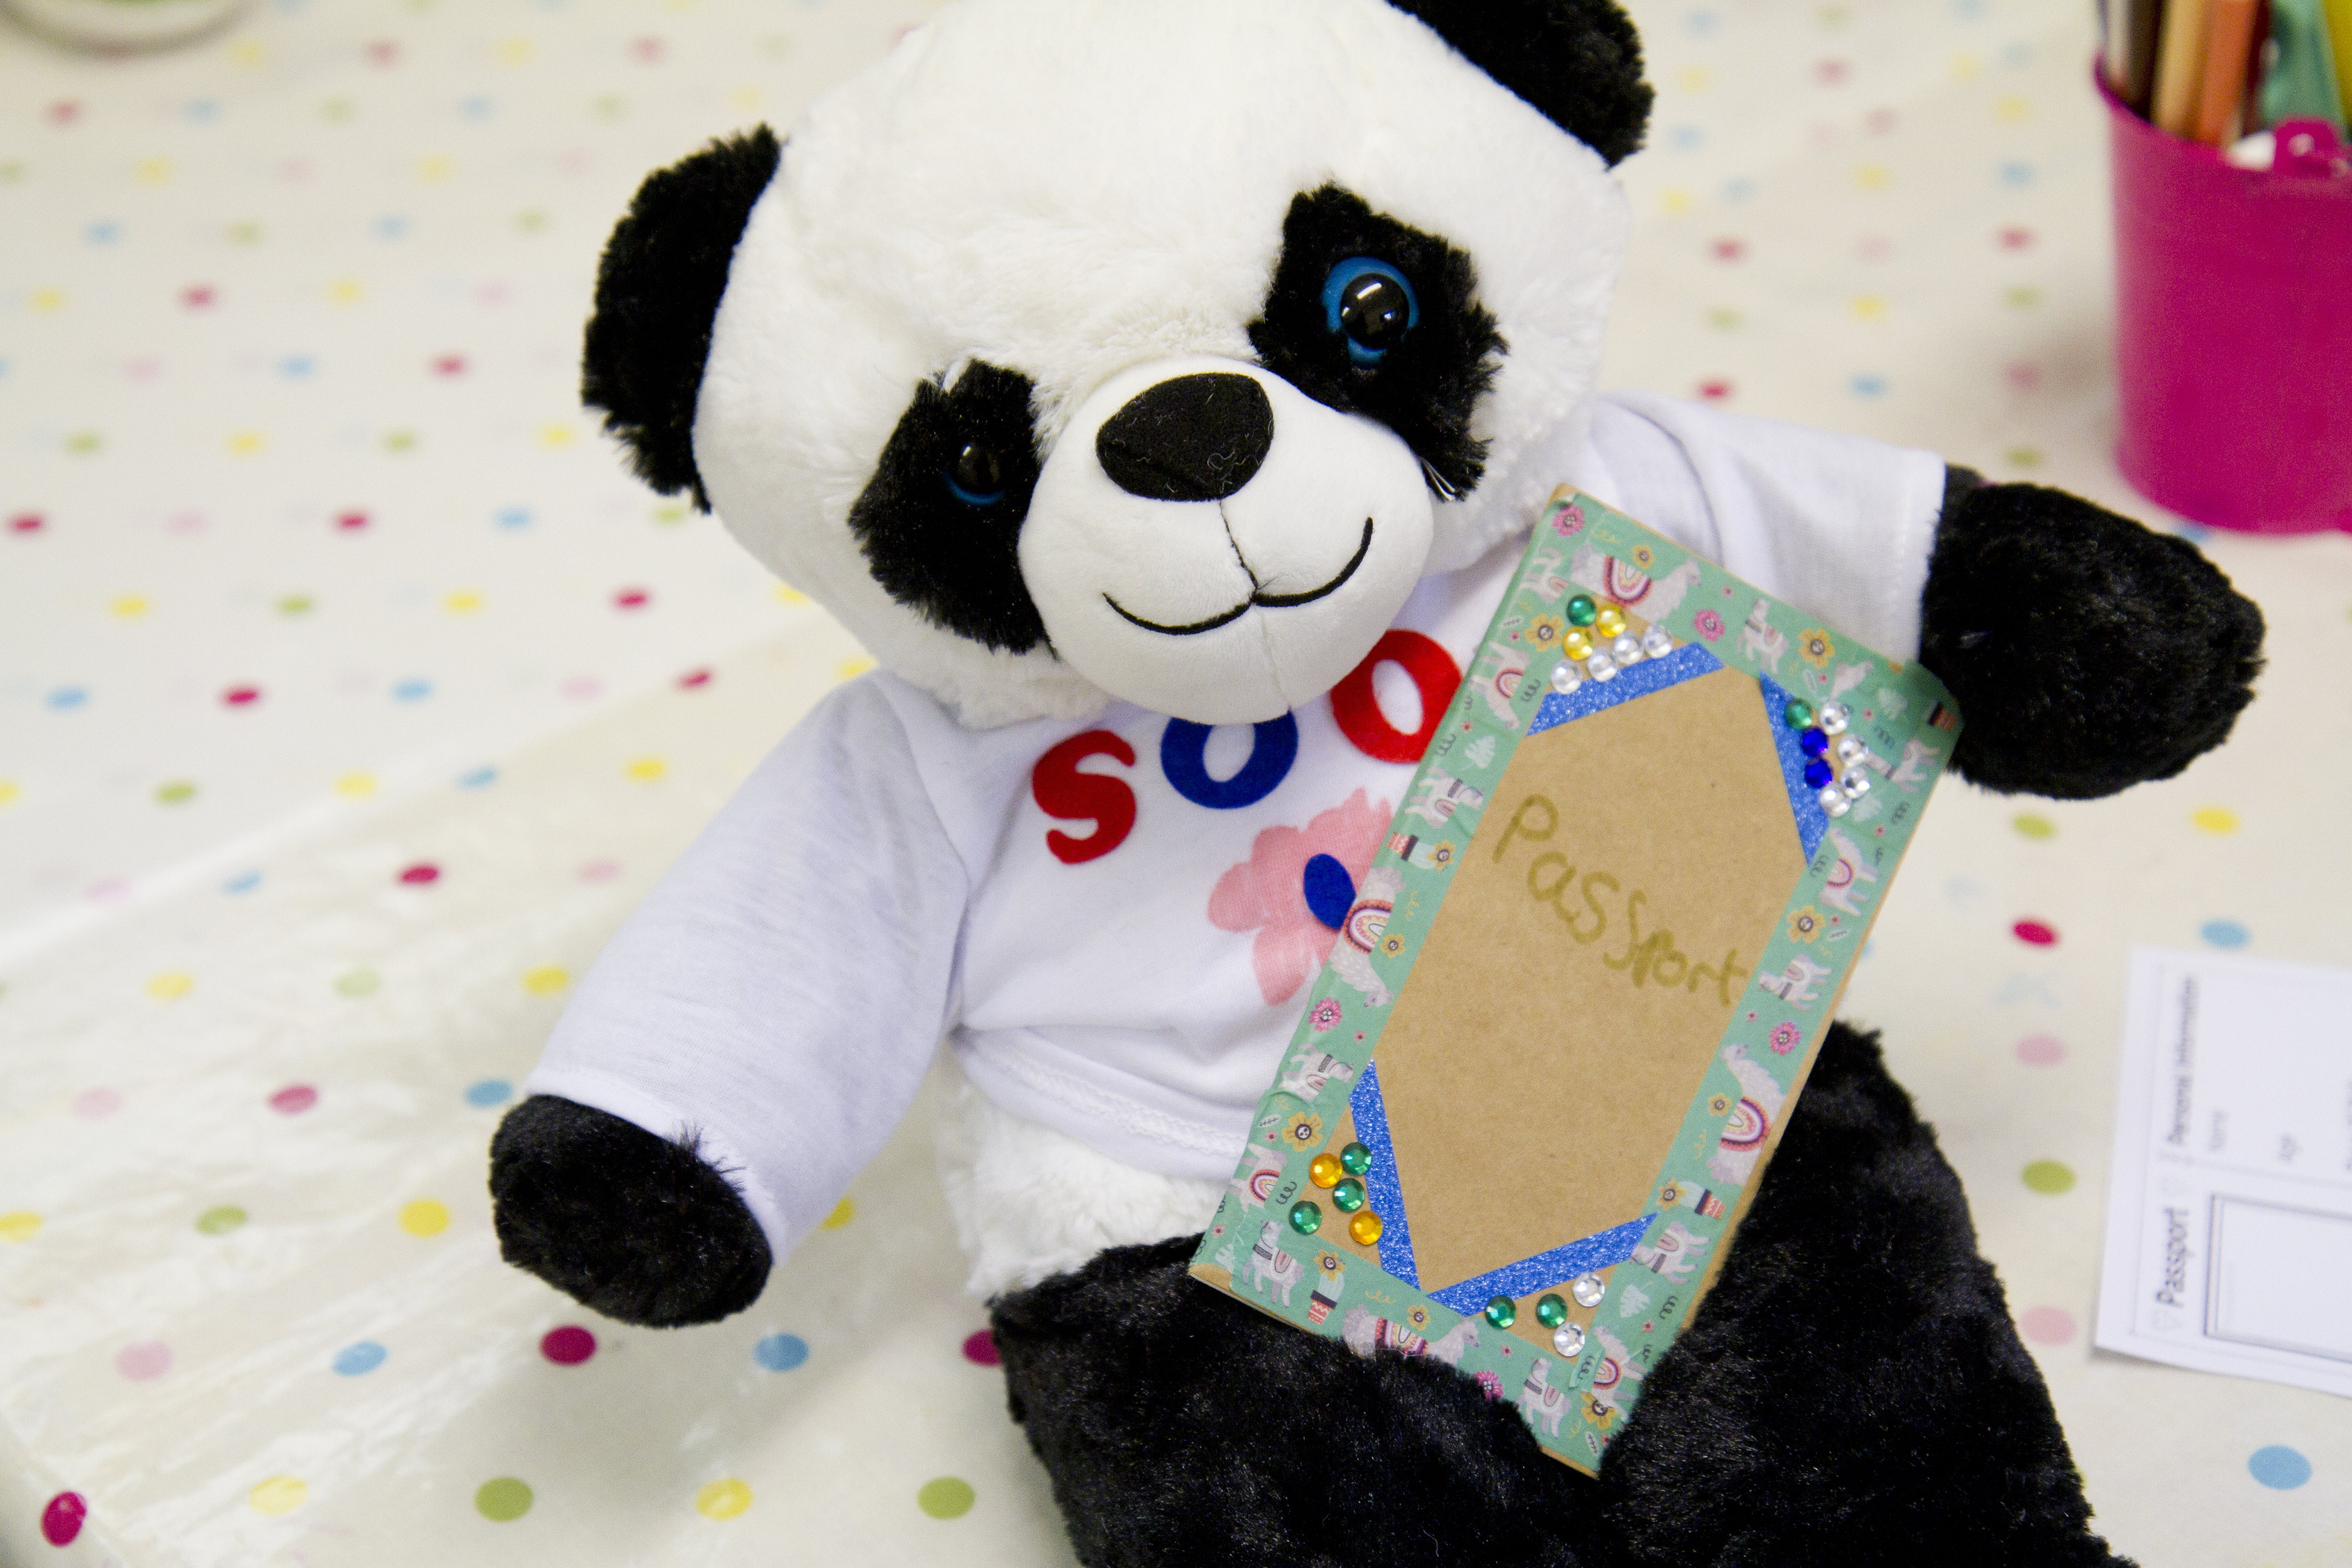 Teddy bear making party by Made By Me Craft Parties. Close up of panda teddy bear with t-shirt and passport made by a child at the party